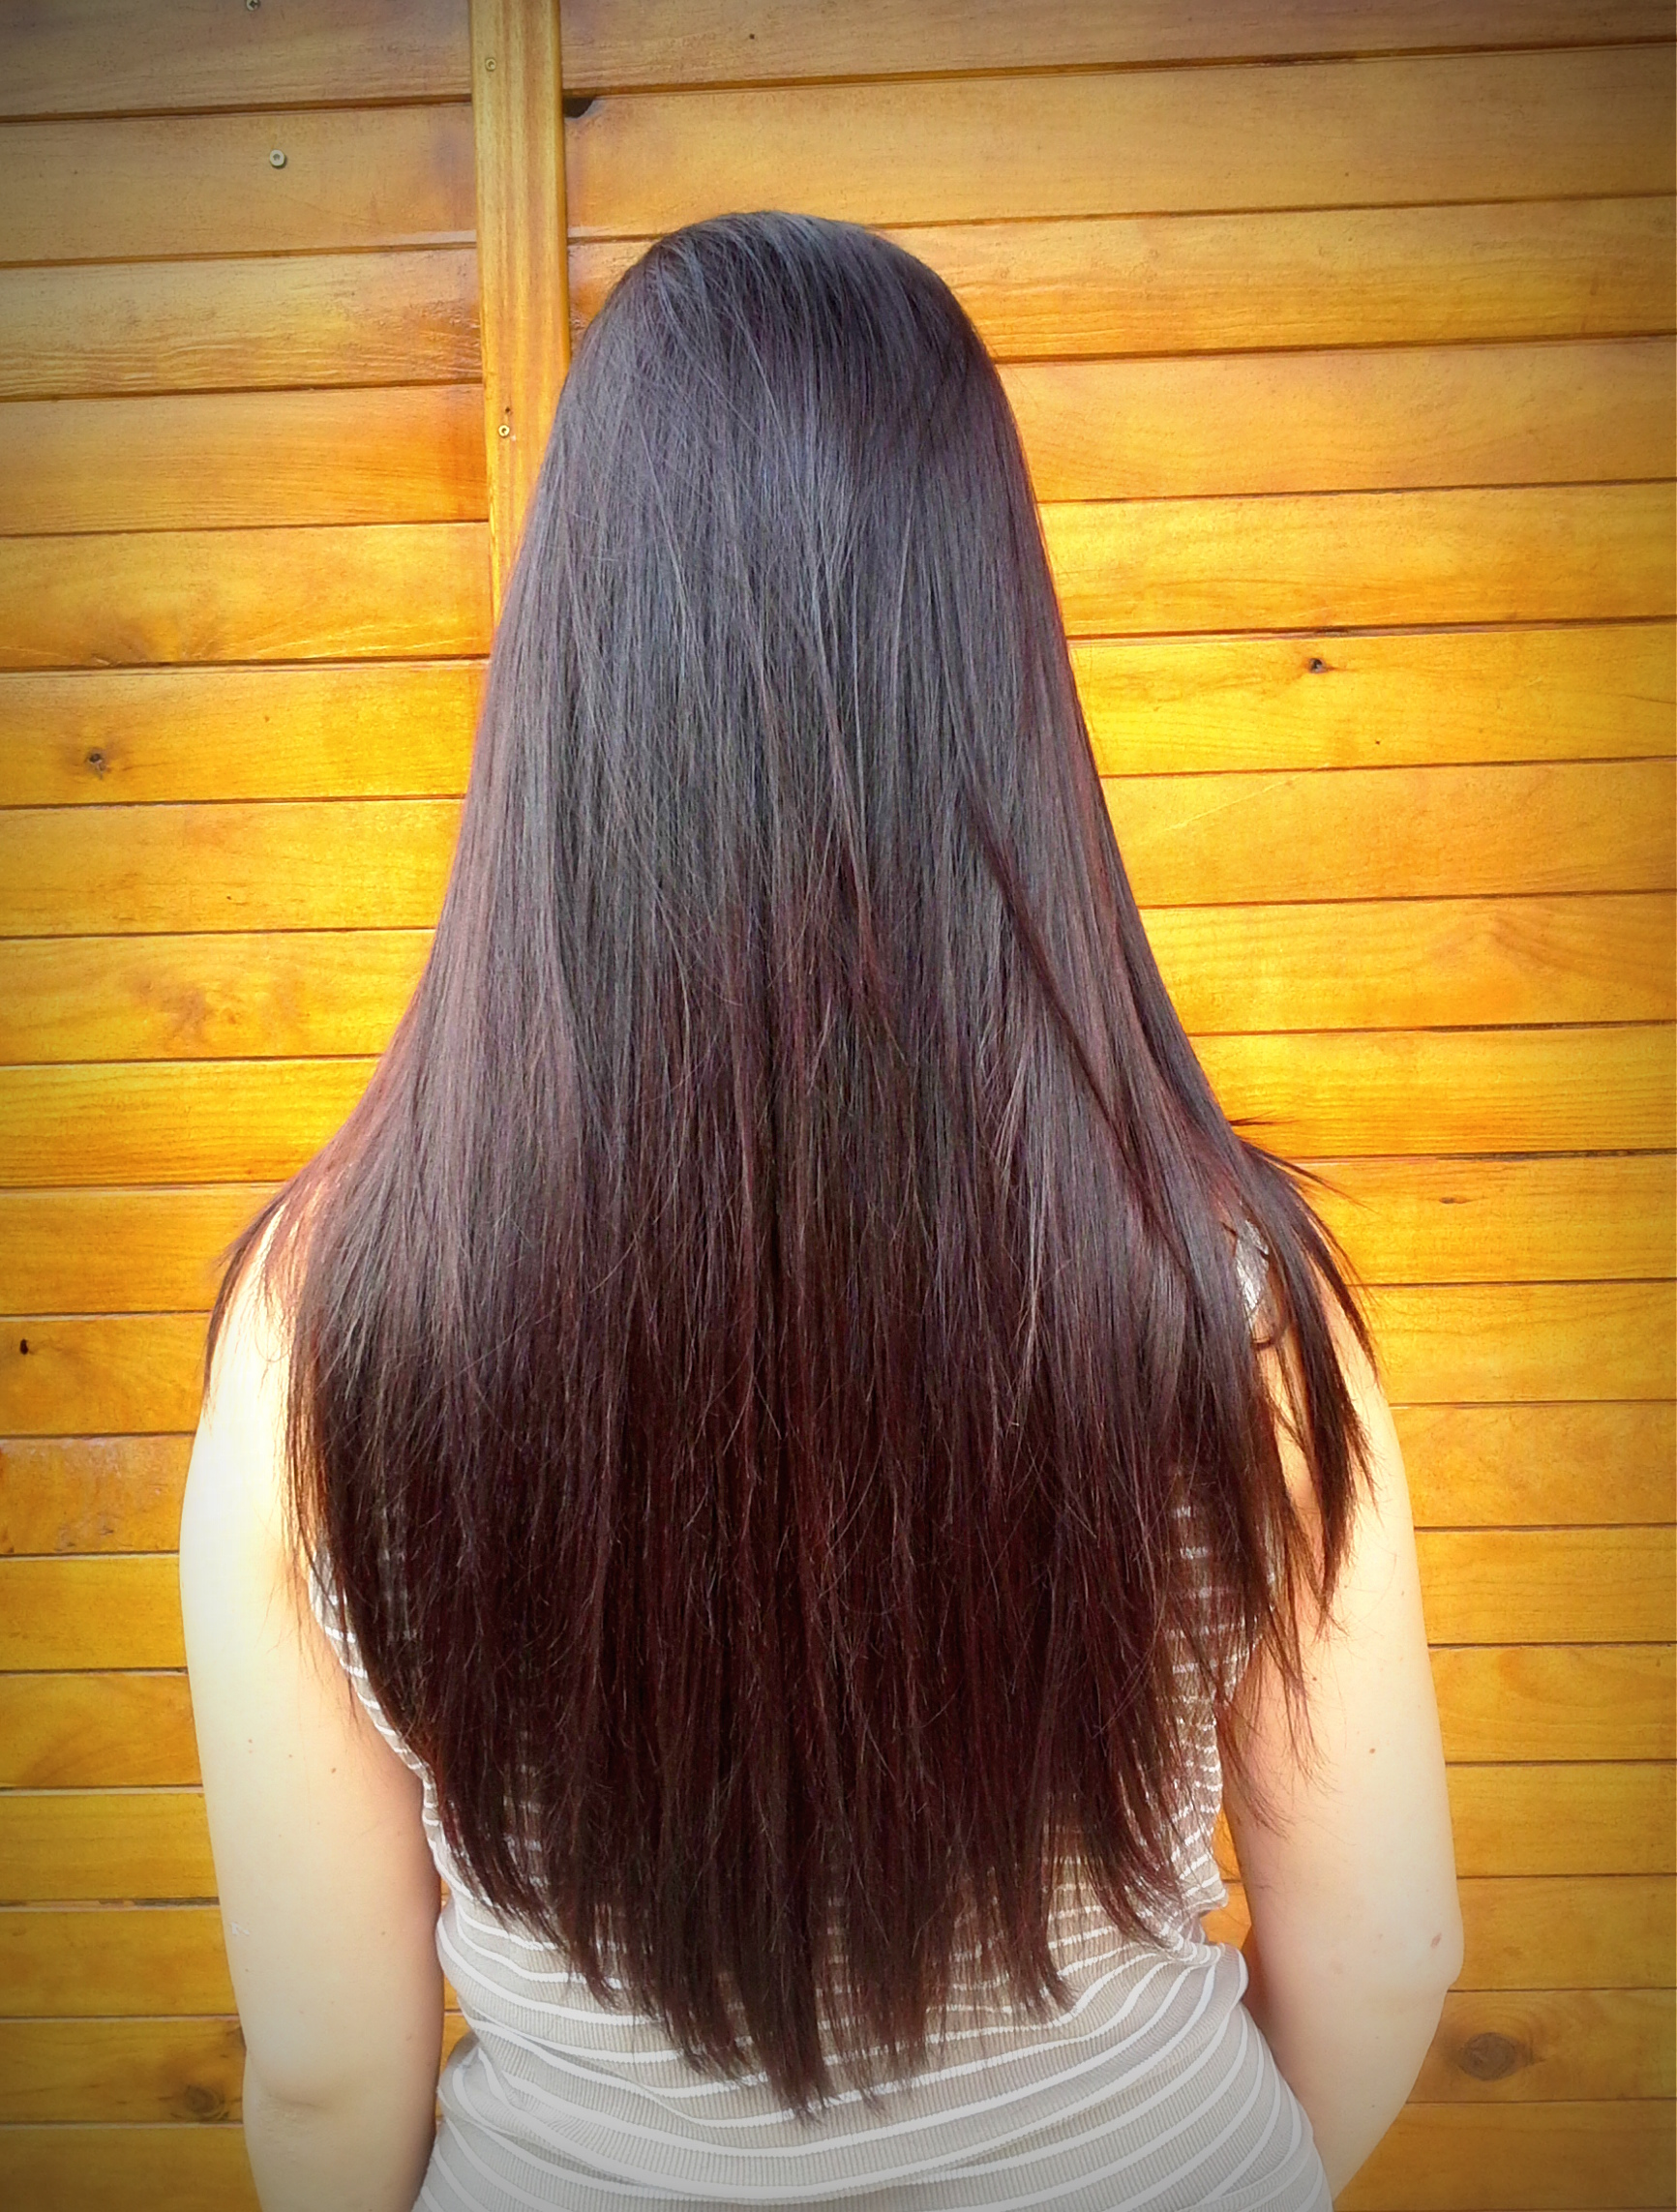 Syx couleur coupe brushing au pays d 39 alice - Prix couleur coupe brushing ...